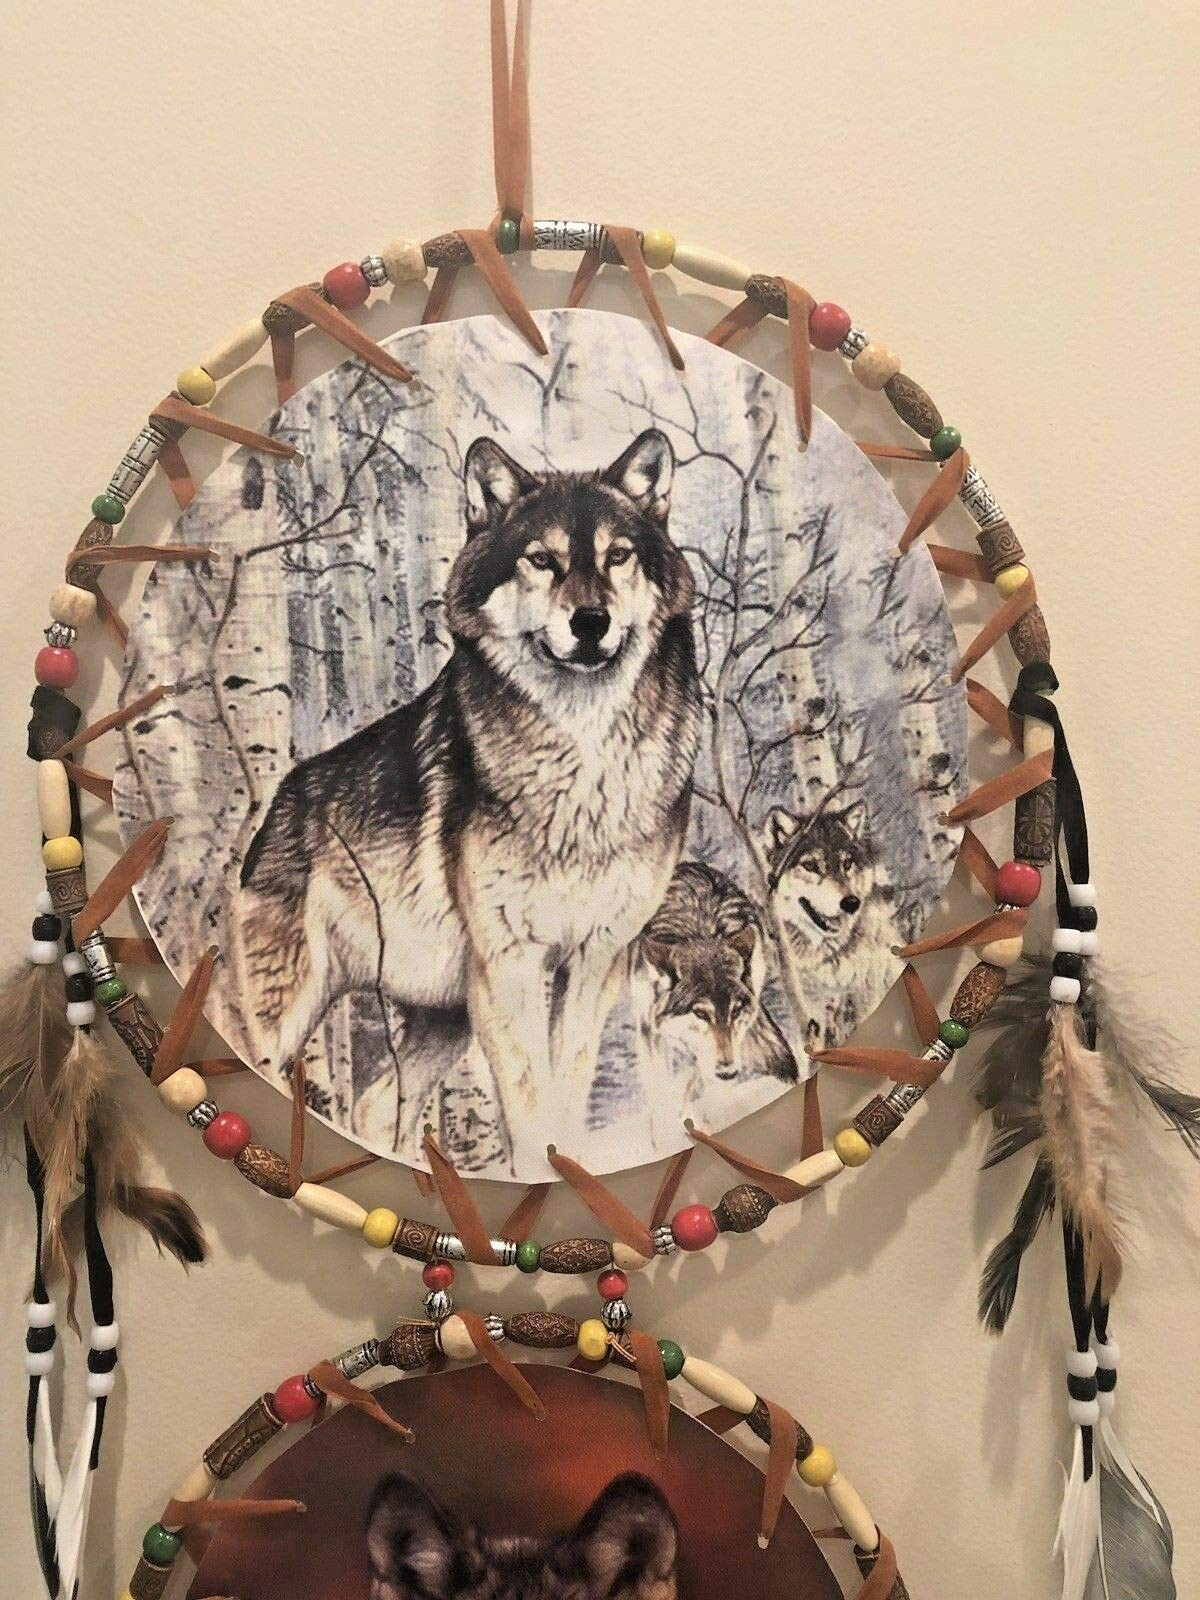 Viet Hand Dream Catcher 3 Canvas Pictures Wolves, Wolf Pack